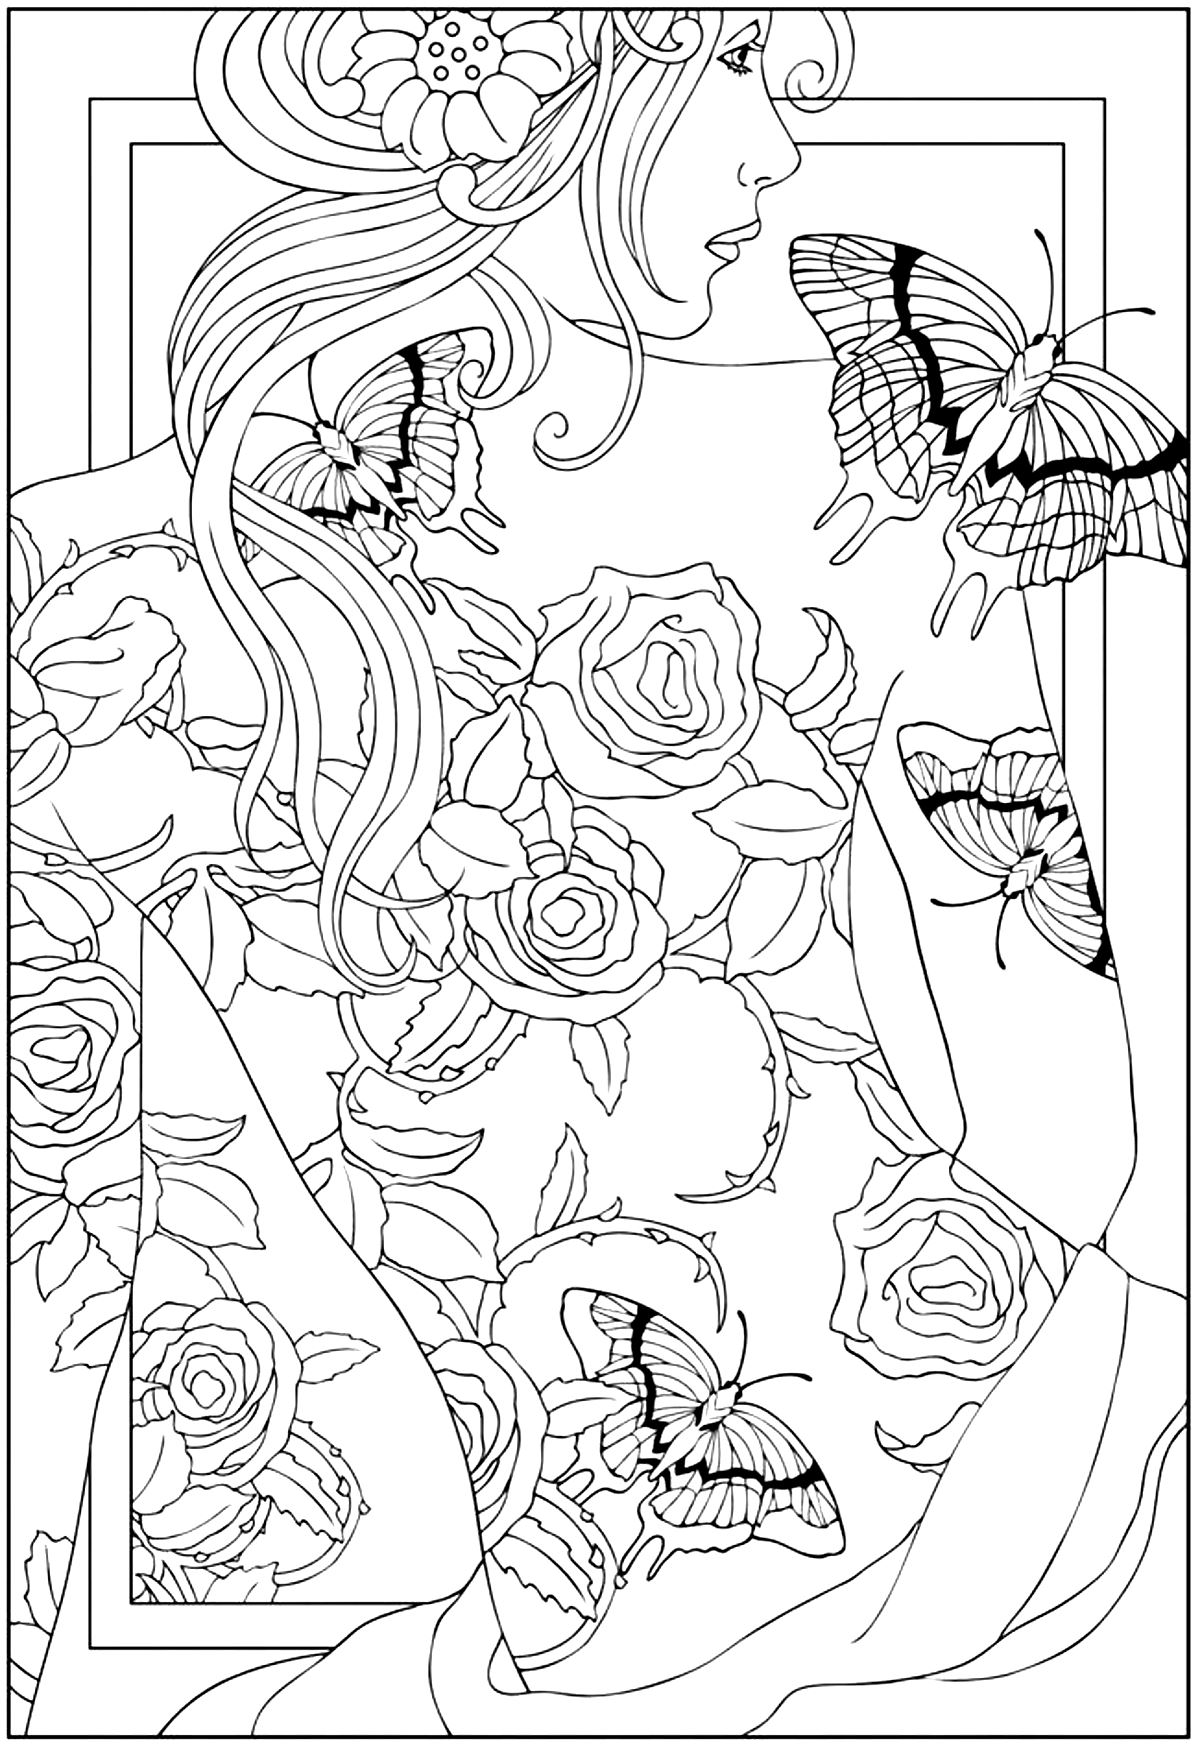 Coloring pages woman - Coloring Adult Back Tattooed Woman Free To Print